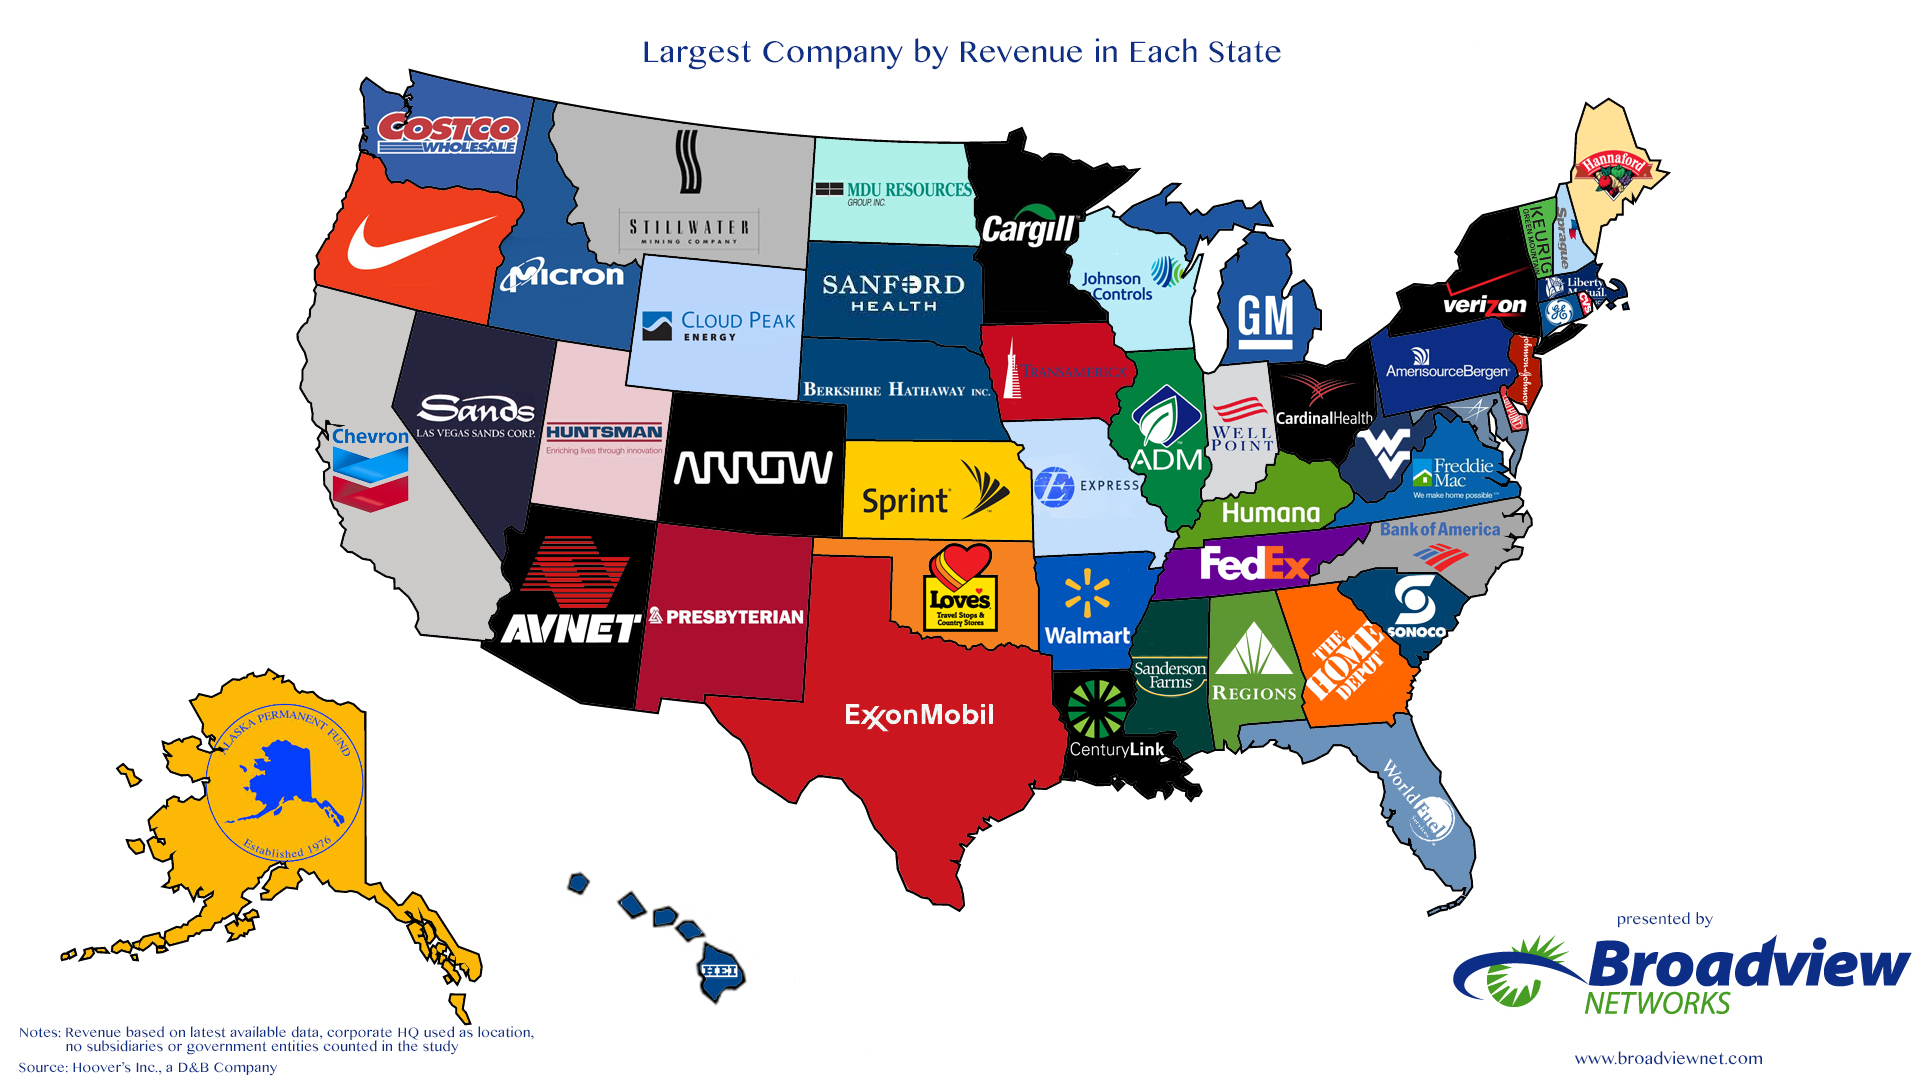 Interesting Map of Largest Company by State by Revenue Design